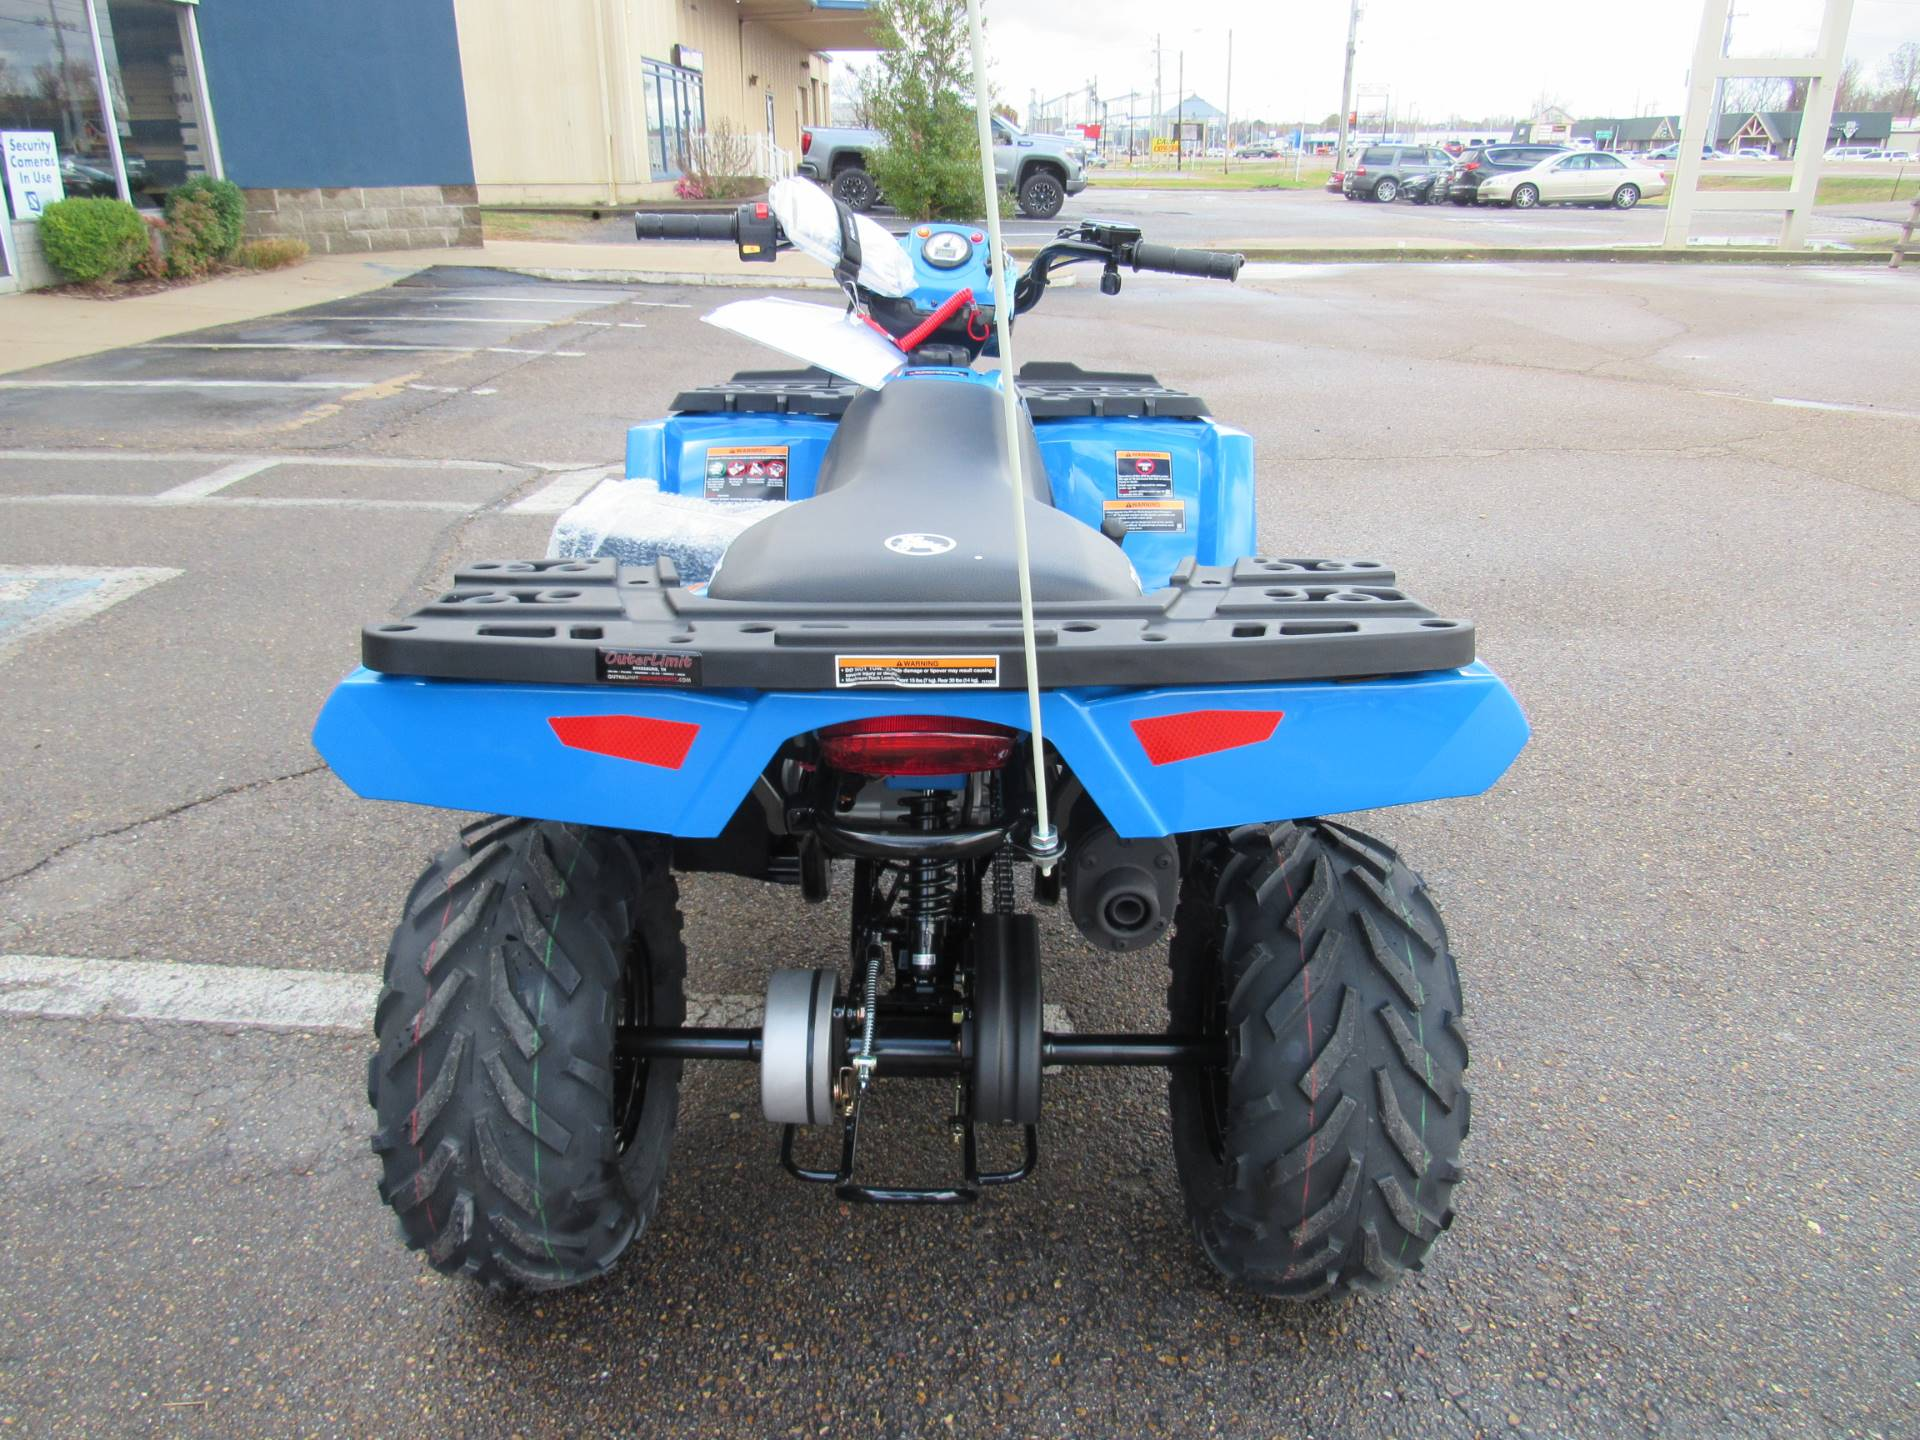 2021 Polaris Sportsman 110 EFI in Dyersburg, Tennessee - Photo 5